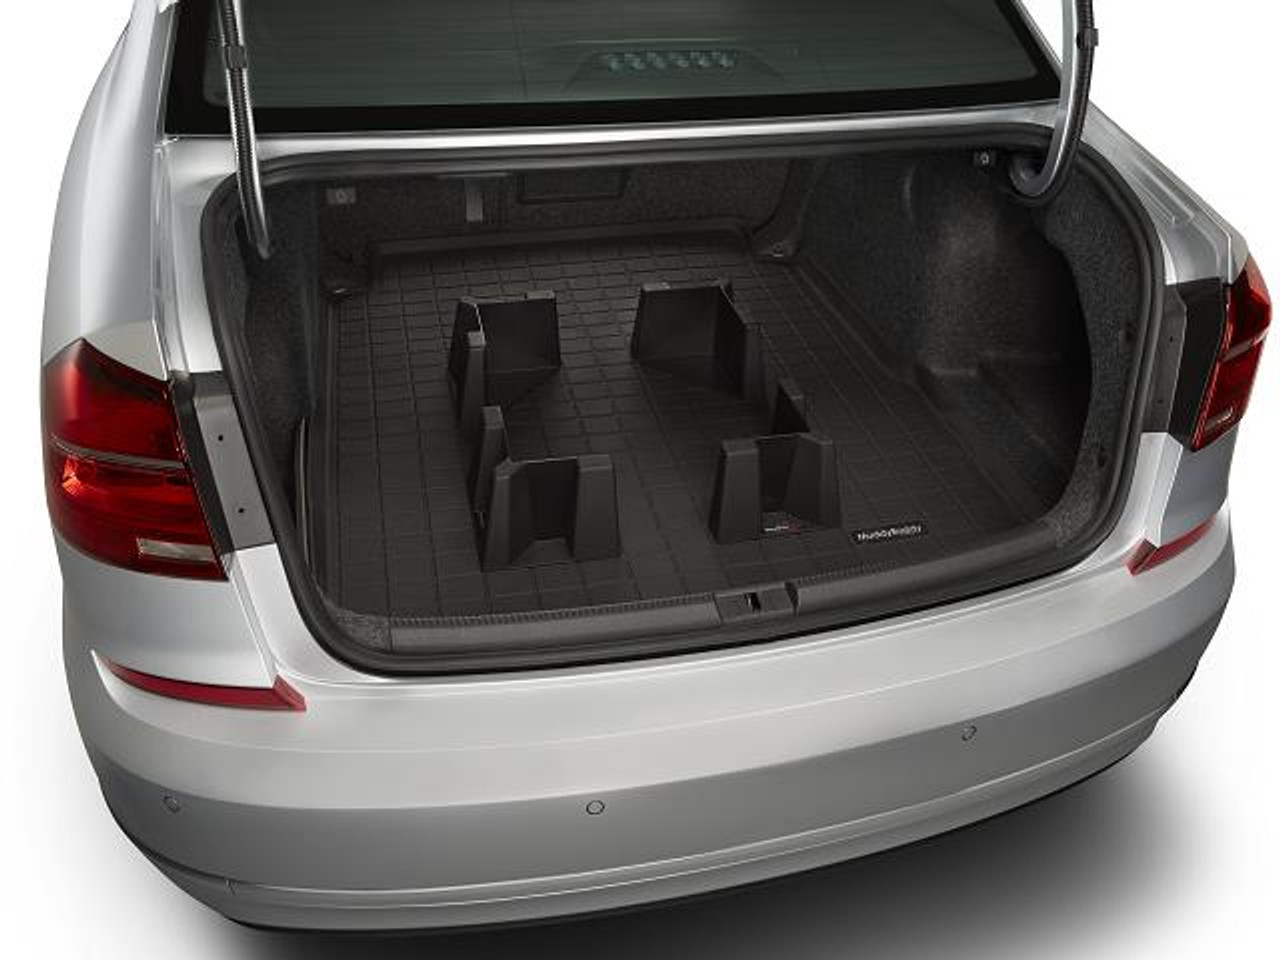 2018-2021 VW Tiguan Rubber Cargo Tray - Containment System Only